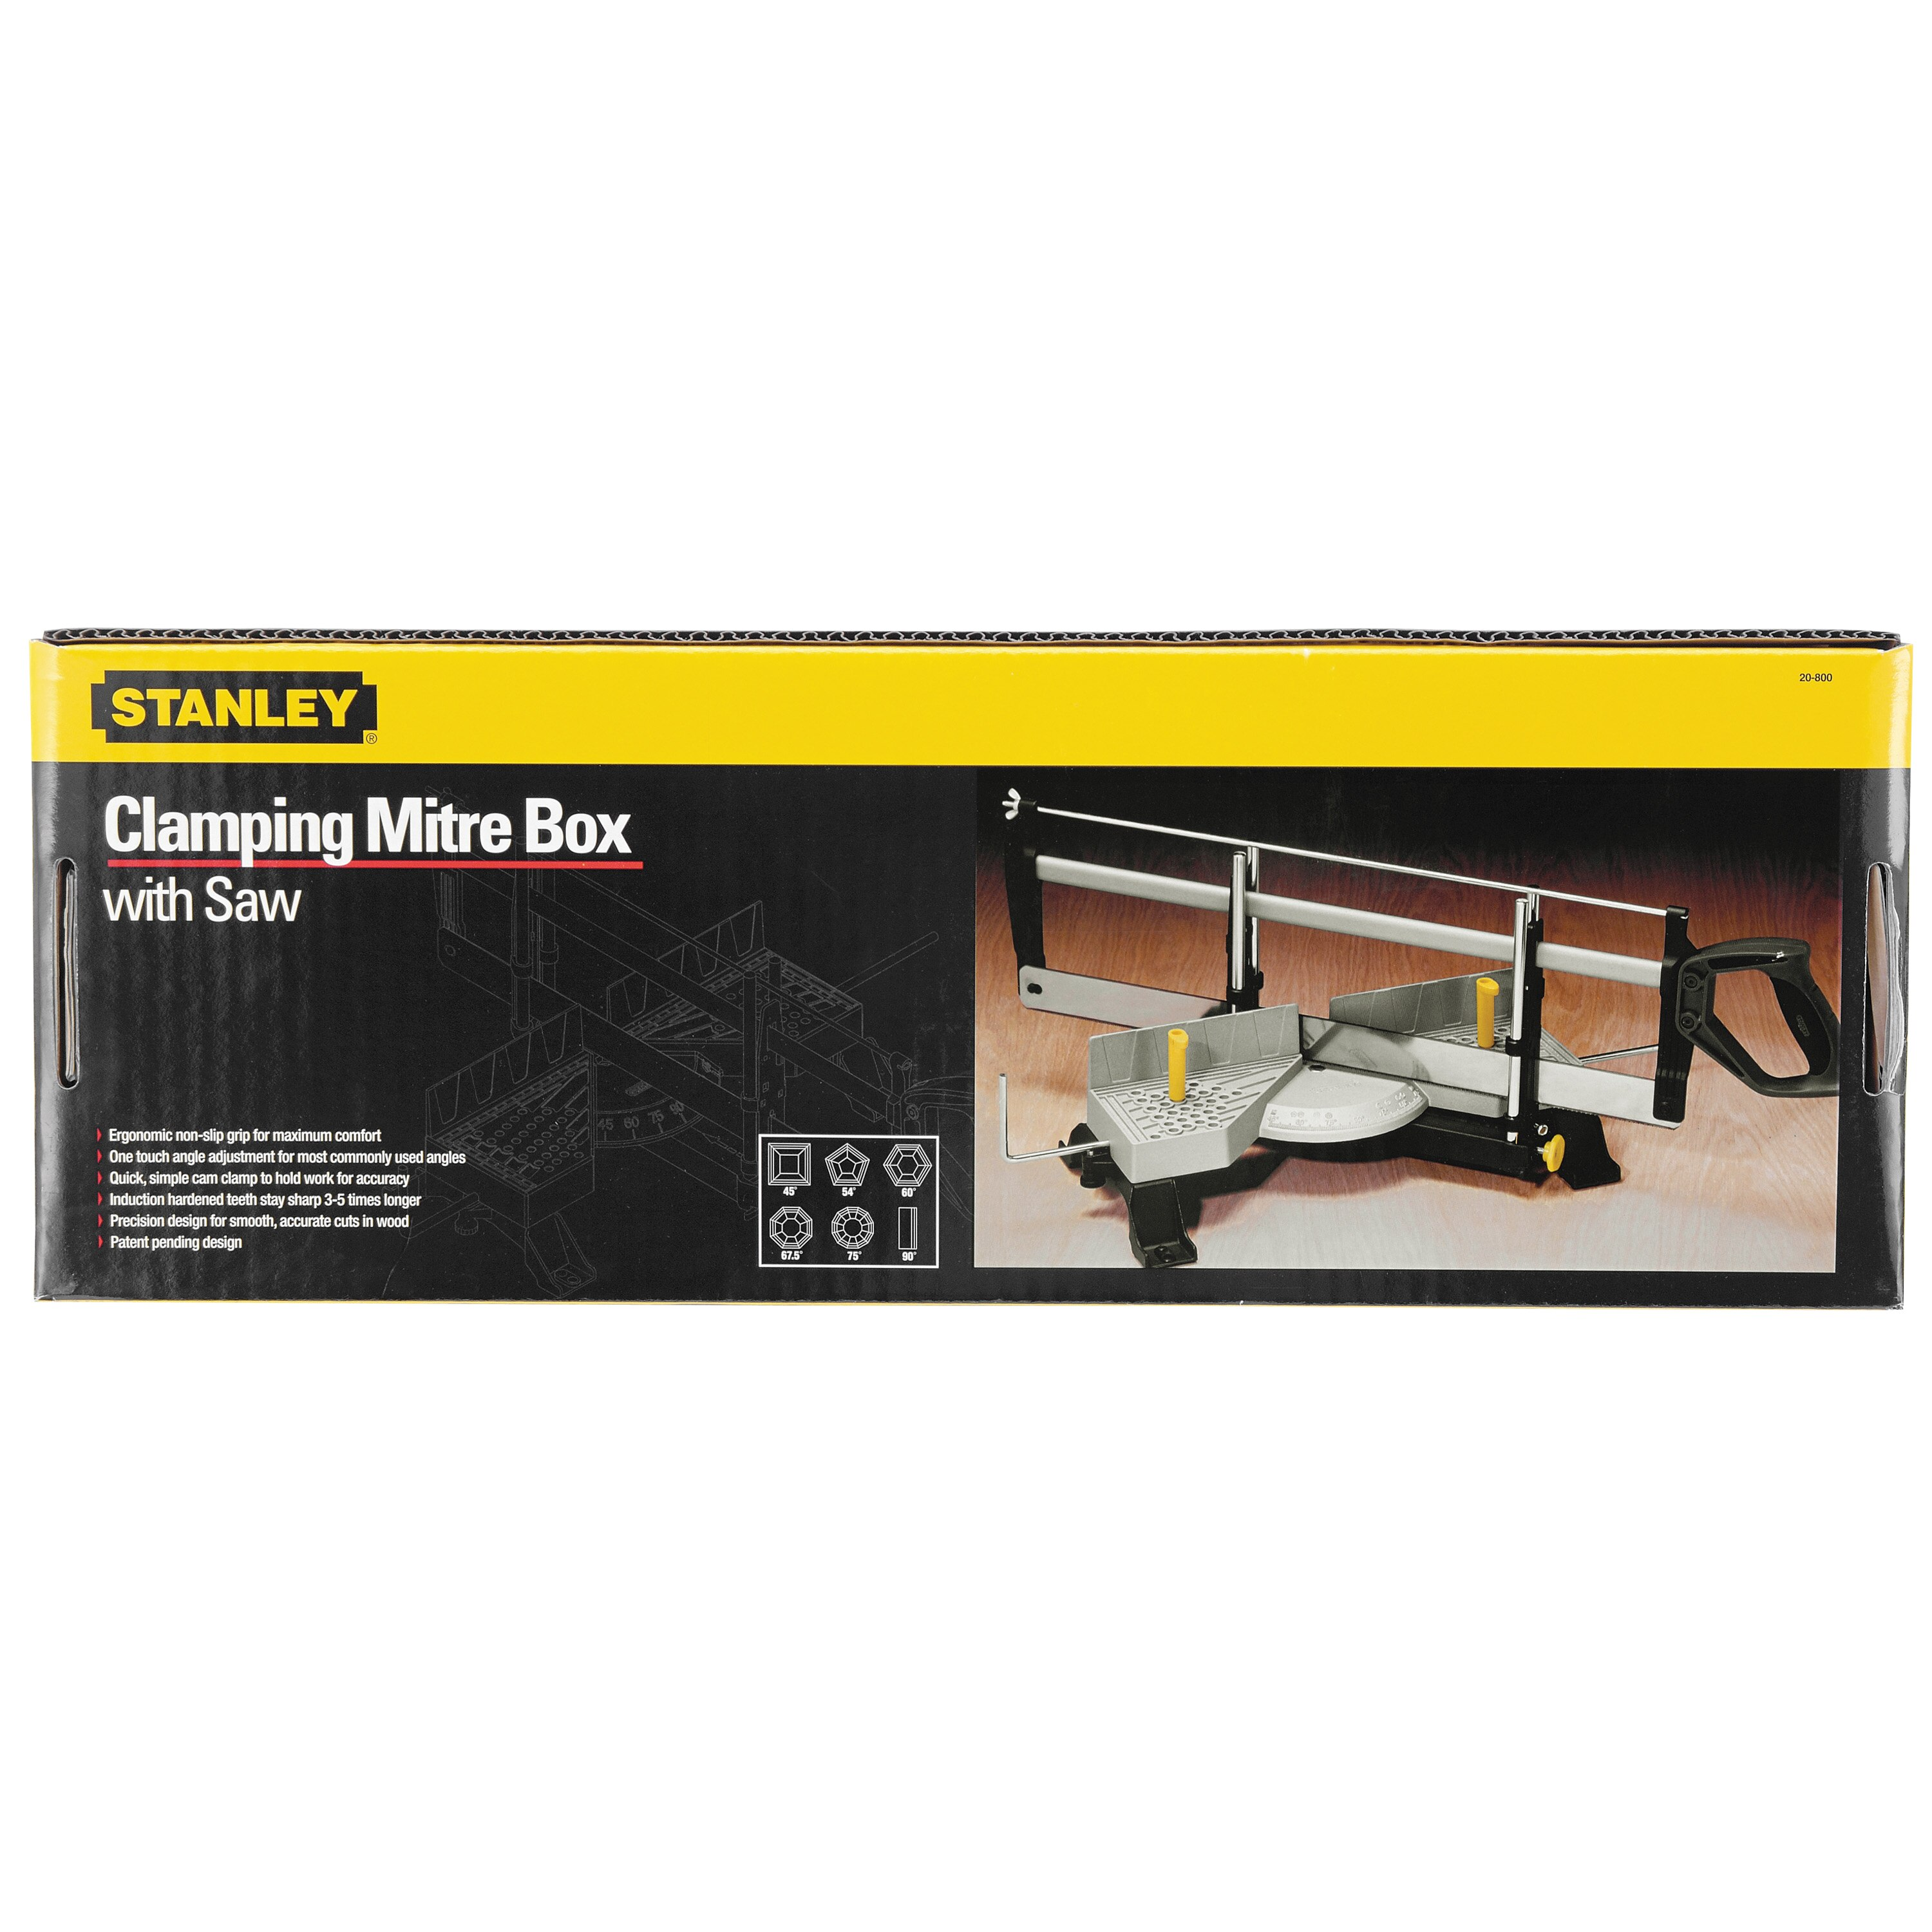 Stanley Tools - Adjustable Angle Clamping Miter Box with 22 in Saw - 20-800